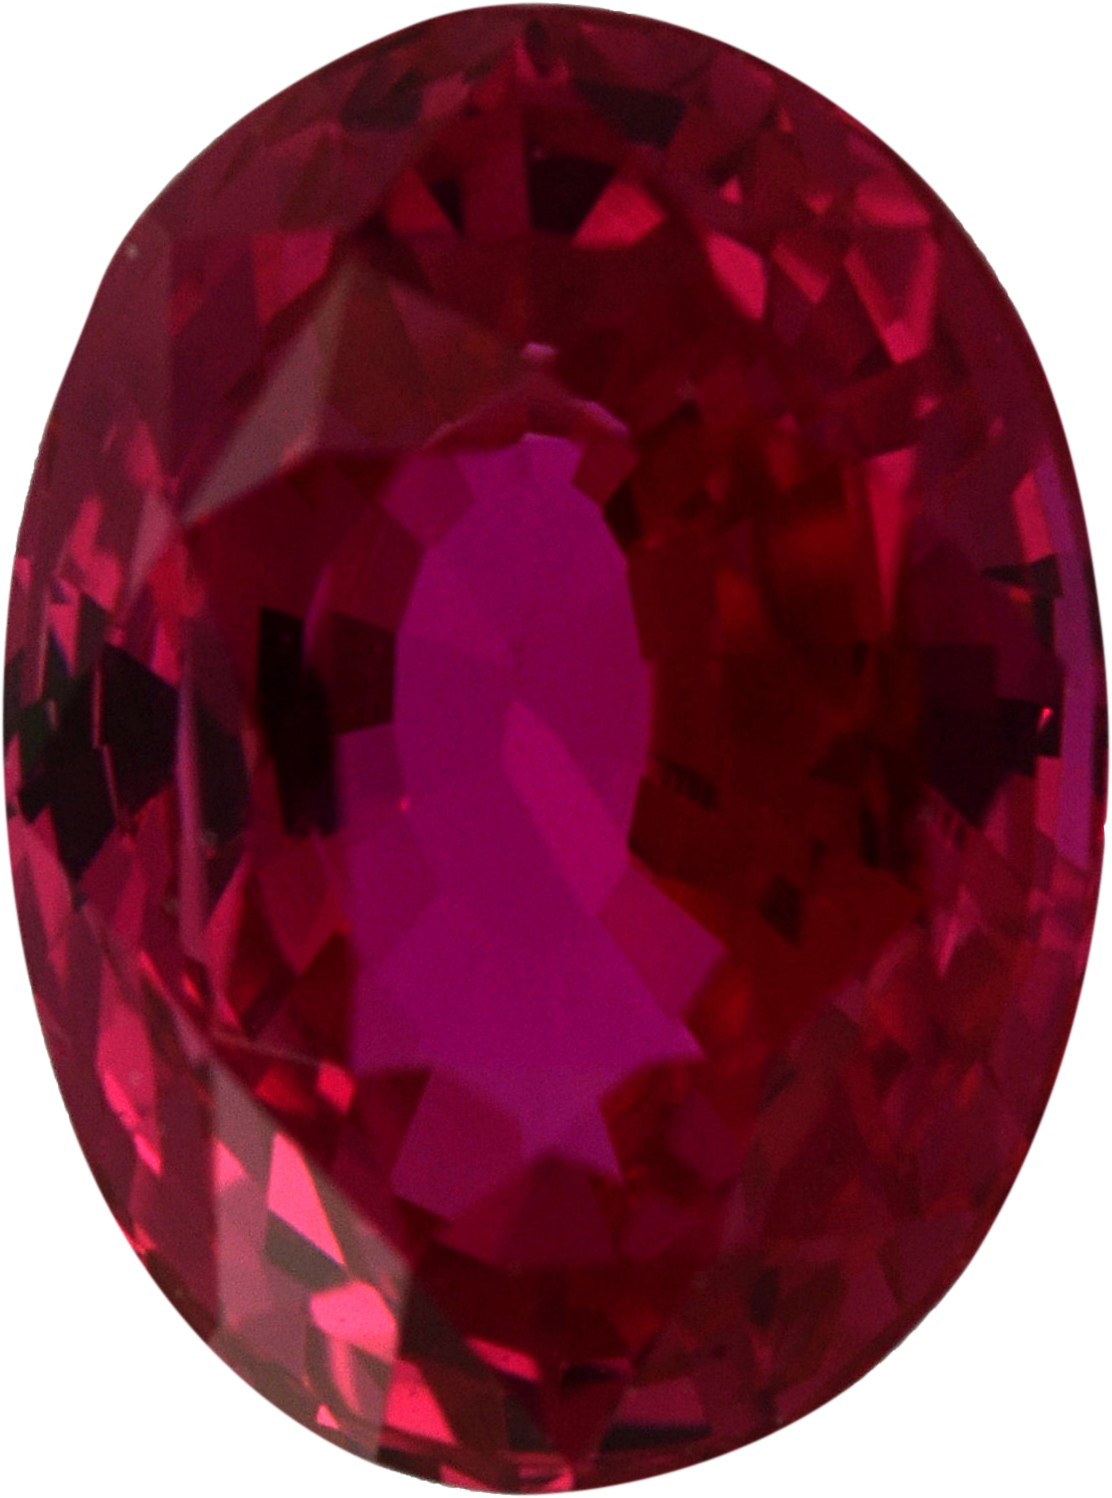 Super Nice Loose Ruby Gem in Oval Cut, Red Color, 7.33 x 5.50 mm, 1.49 carats